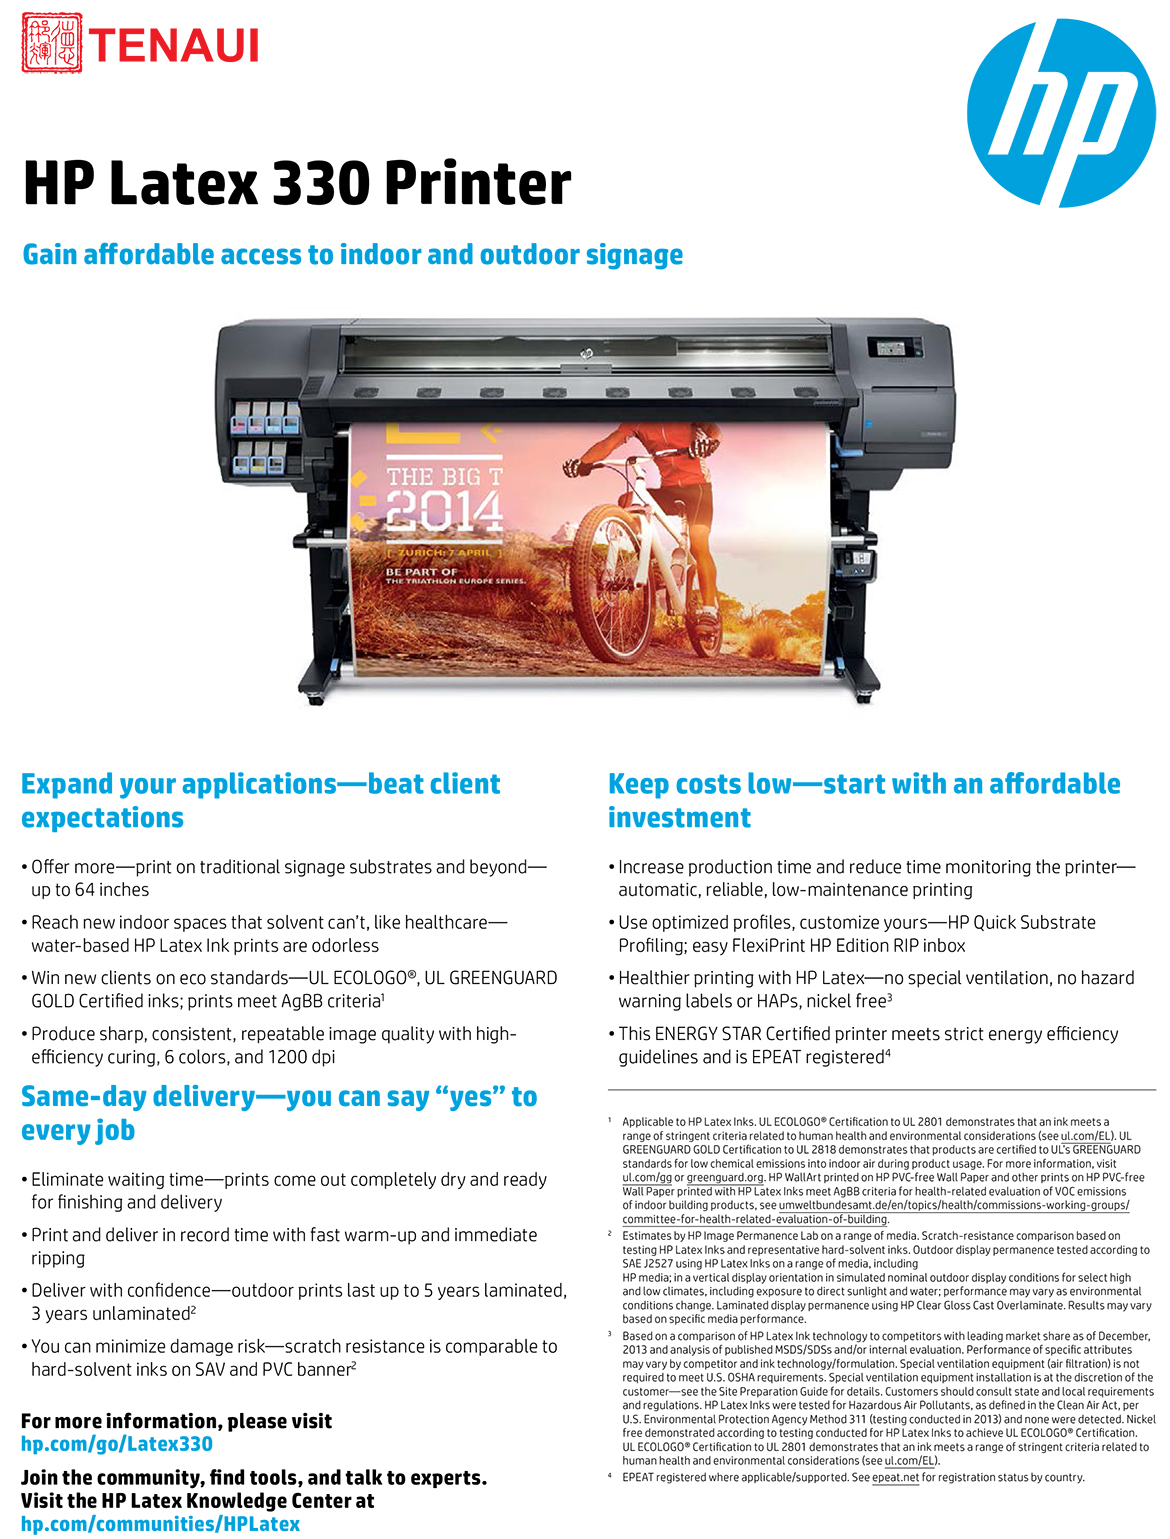 hp-latex-330printer-tenaui